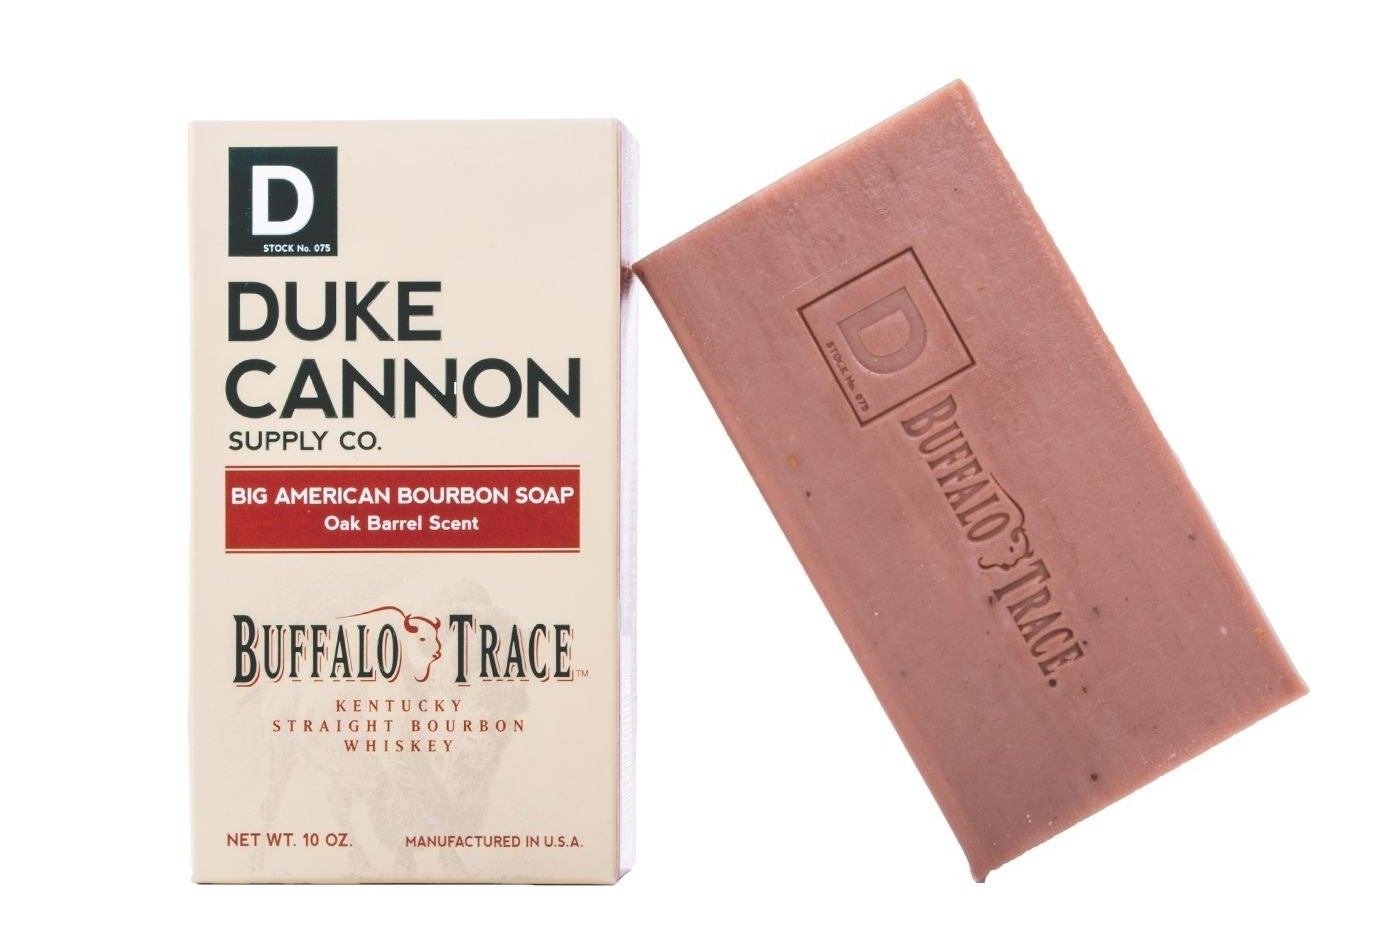 The soap, which is a light brown color and in the form of a rectangular bar